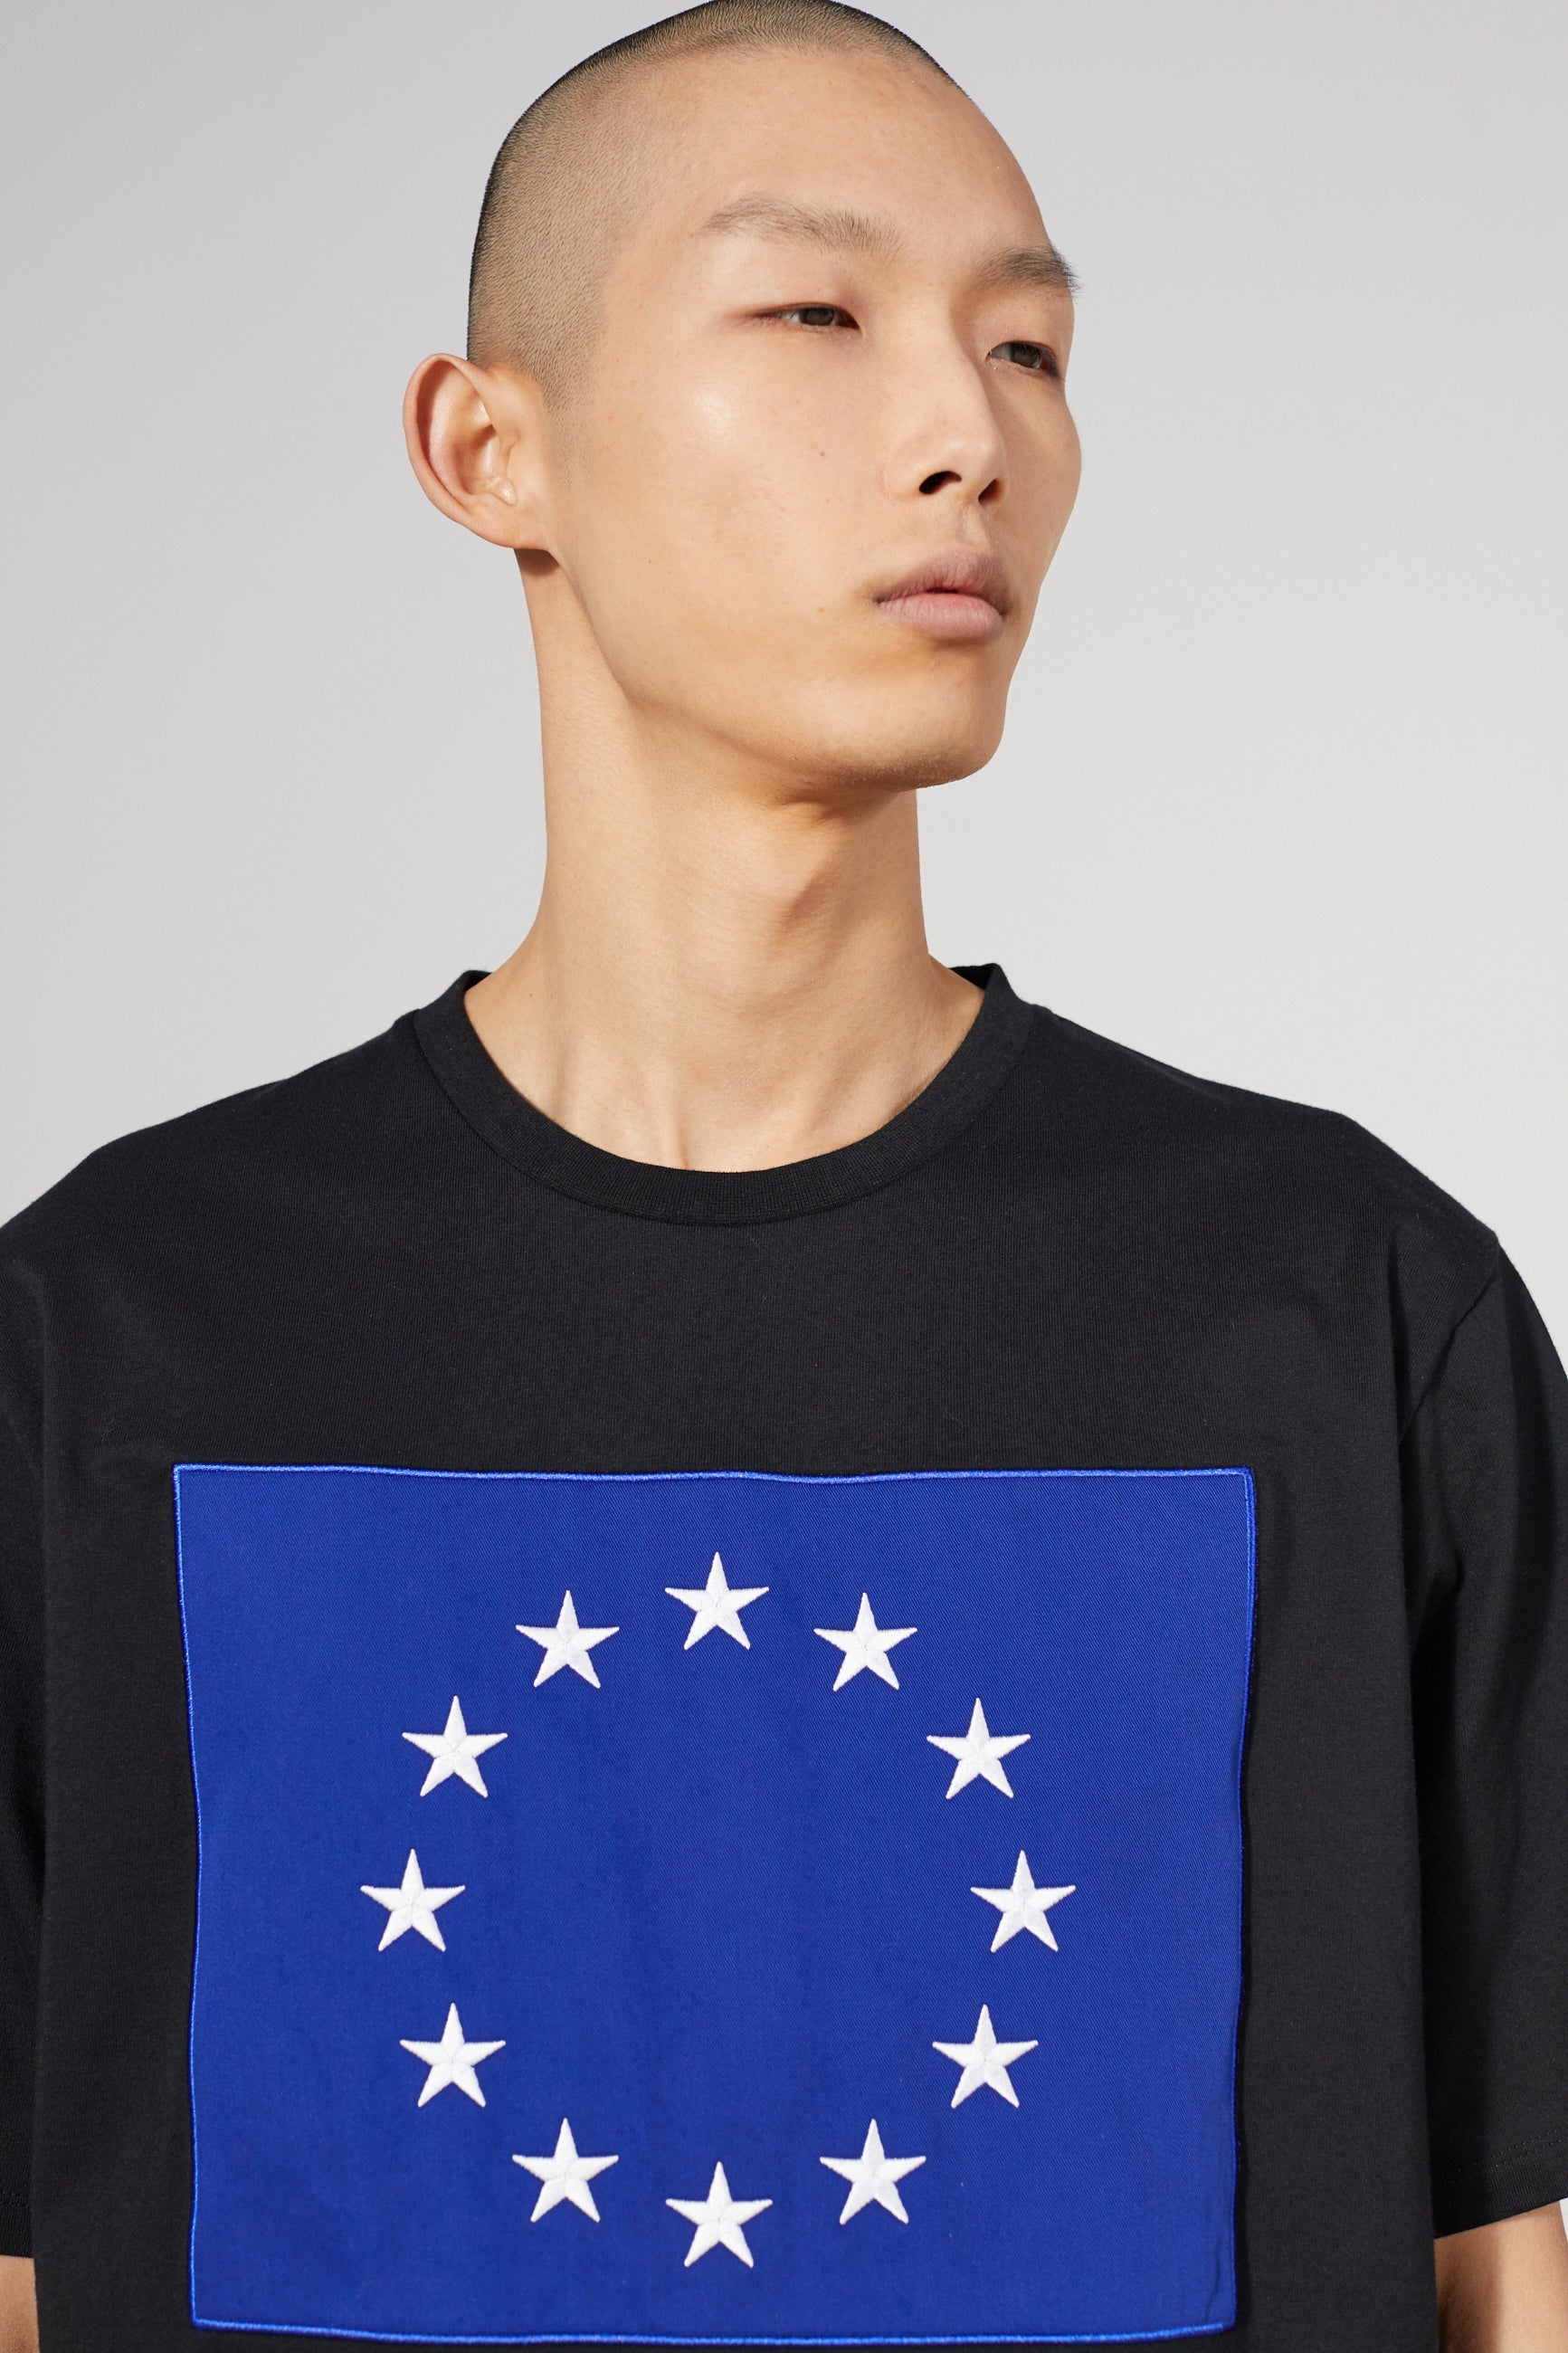 WONDER FLAG EUROPA BLACK T-SHIRT